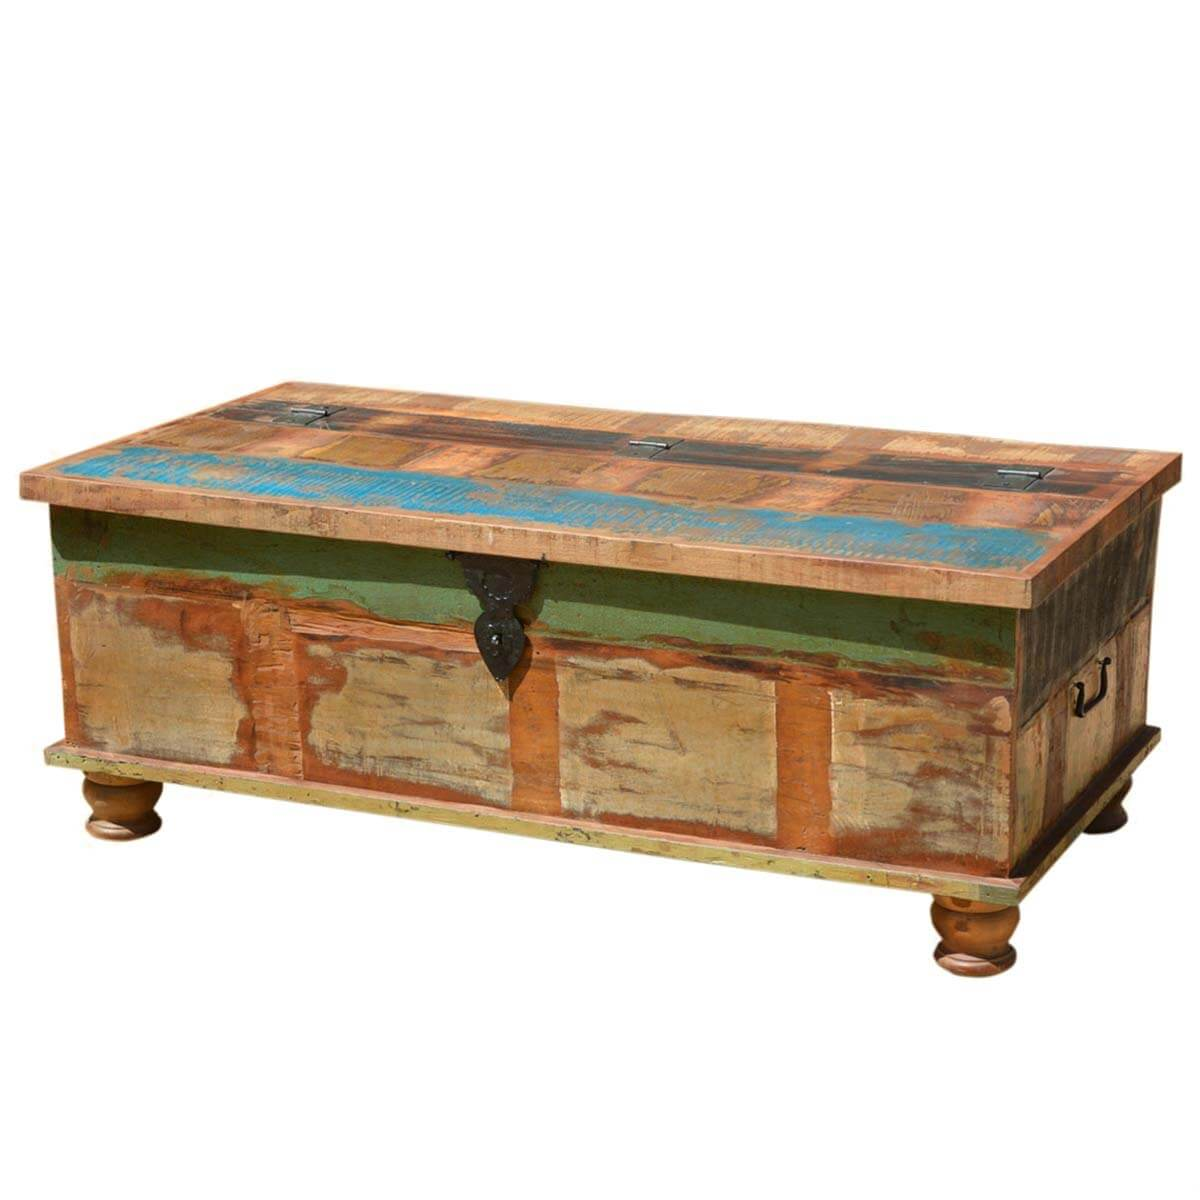 Grinnell rustic reclaimed wood coffee table storage trunk Coffee table chest with storage